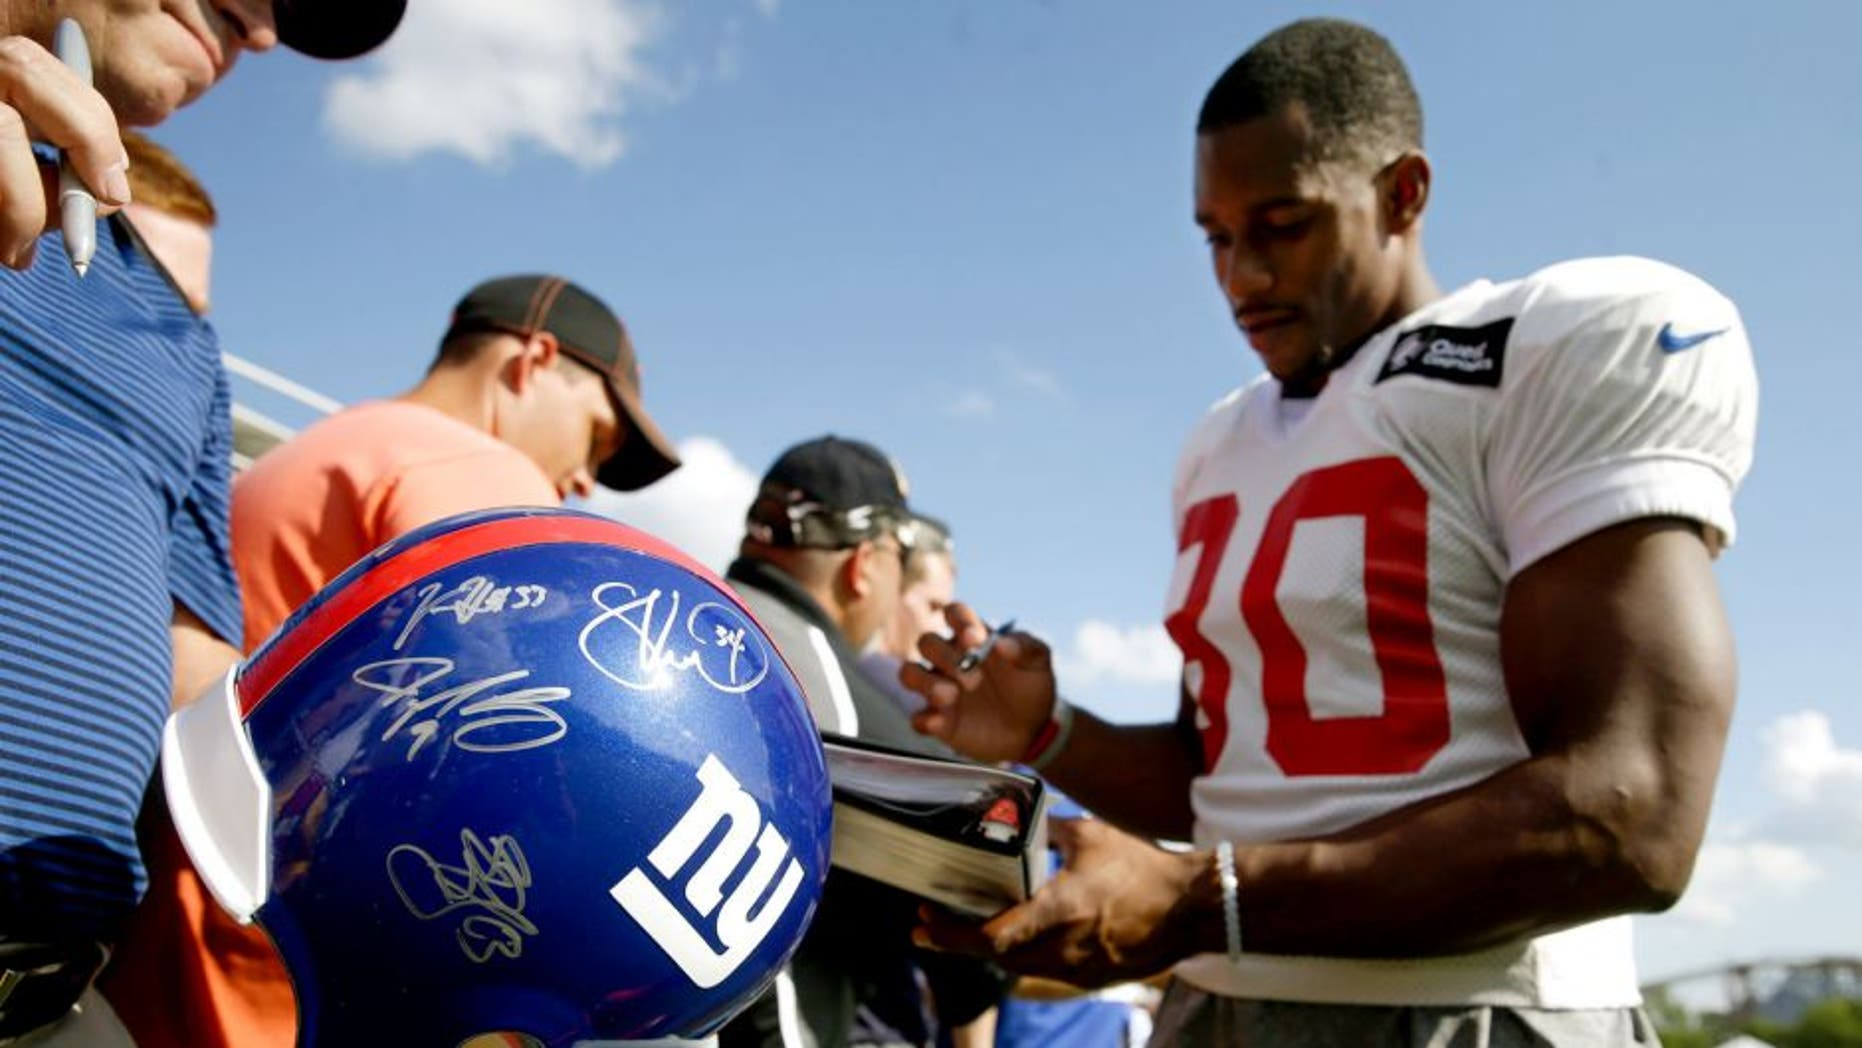 New York Giants wide receiver Victor Cruz, right, signs autographs after the Giants' joint NFL football training camp with the Cincinnati Bengals, Tuesday, Aug. 11, 2015, in Cincinnati. (AP Photo/John Minchillo)